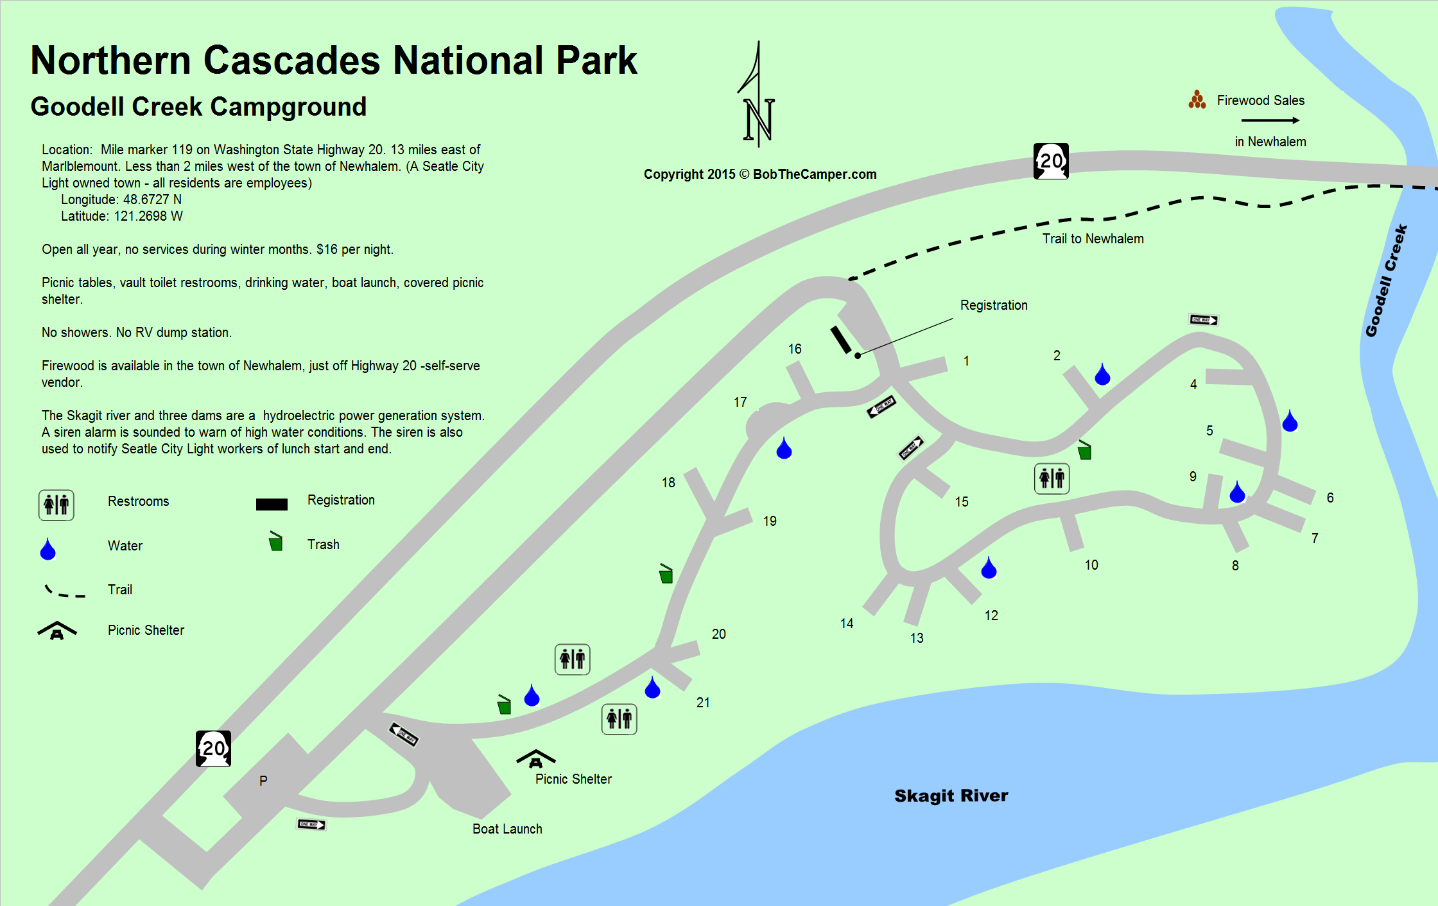 North Cascades National Park Goodell Creek Campground Map